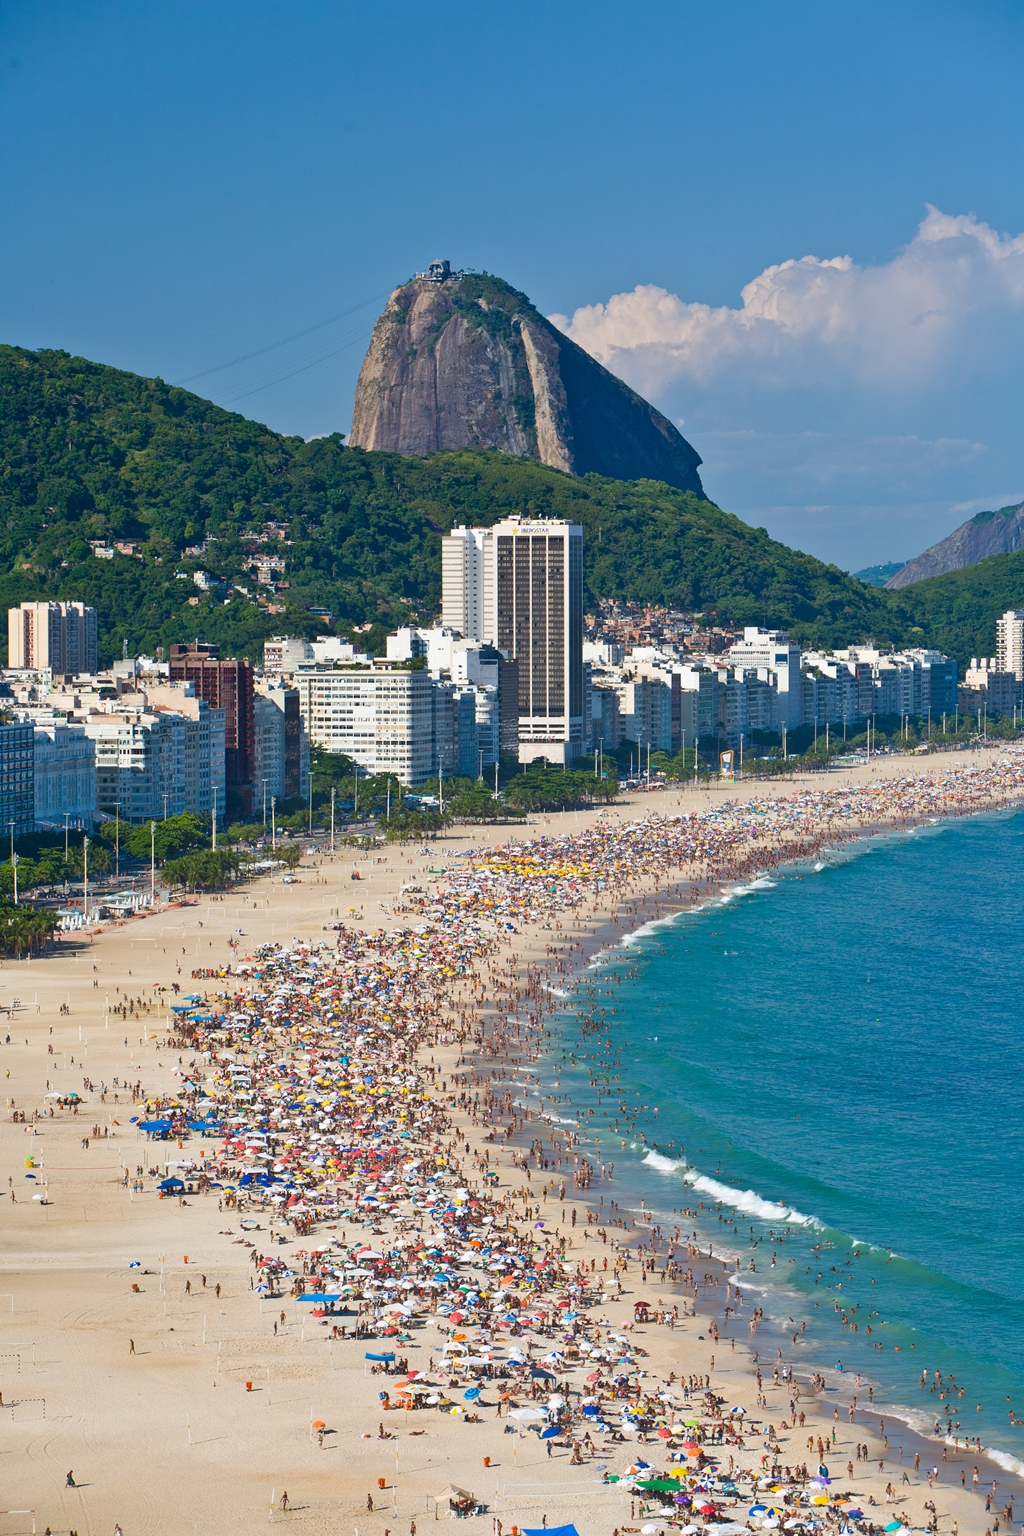 Aerial view of Copacabana Beach full of beachgoers, showing Sugar Loaf Mountain in the background, Rio de Janeiro, Brazil. Copacabana is the most famous beach in Rio